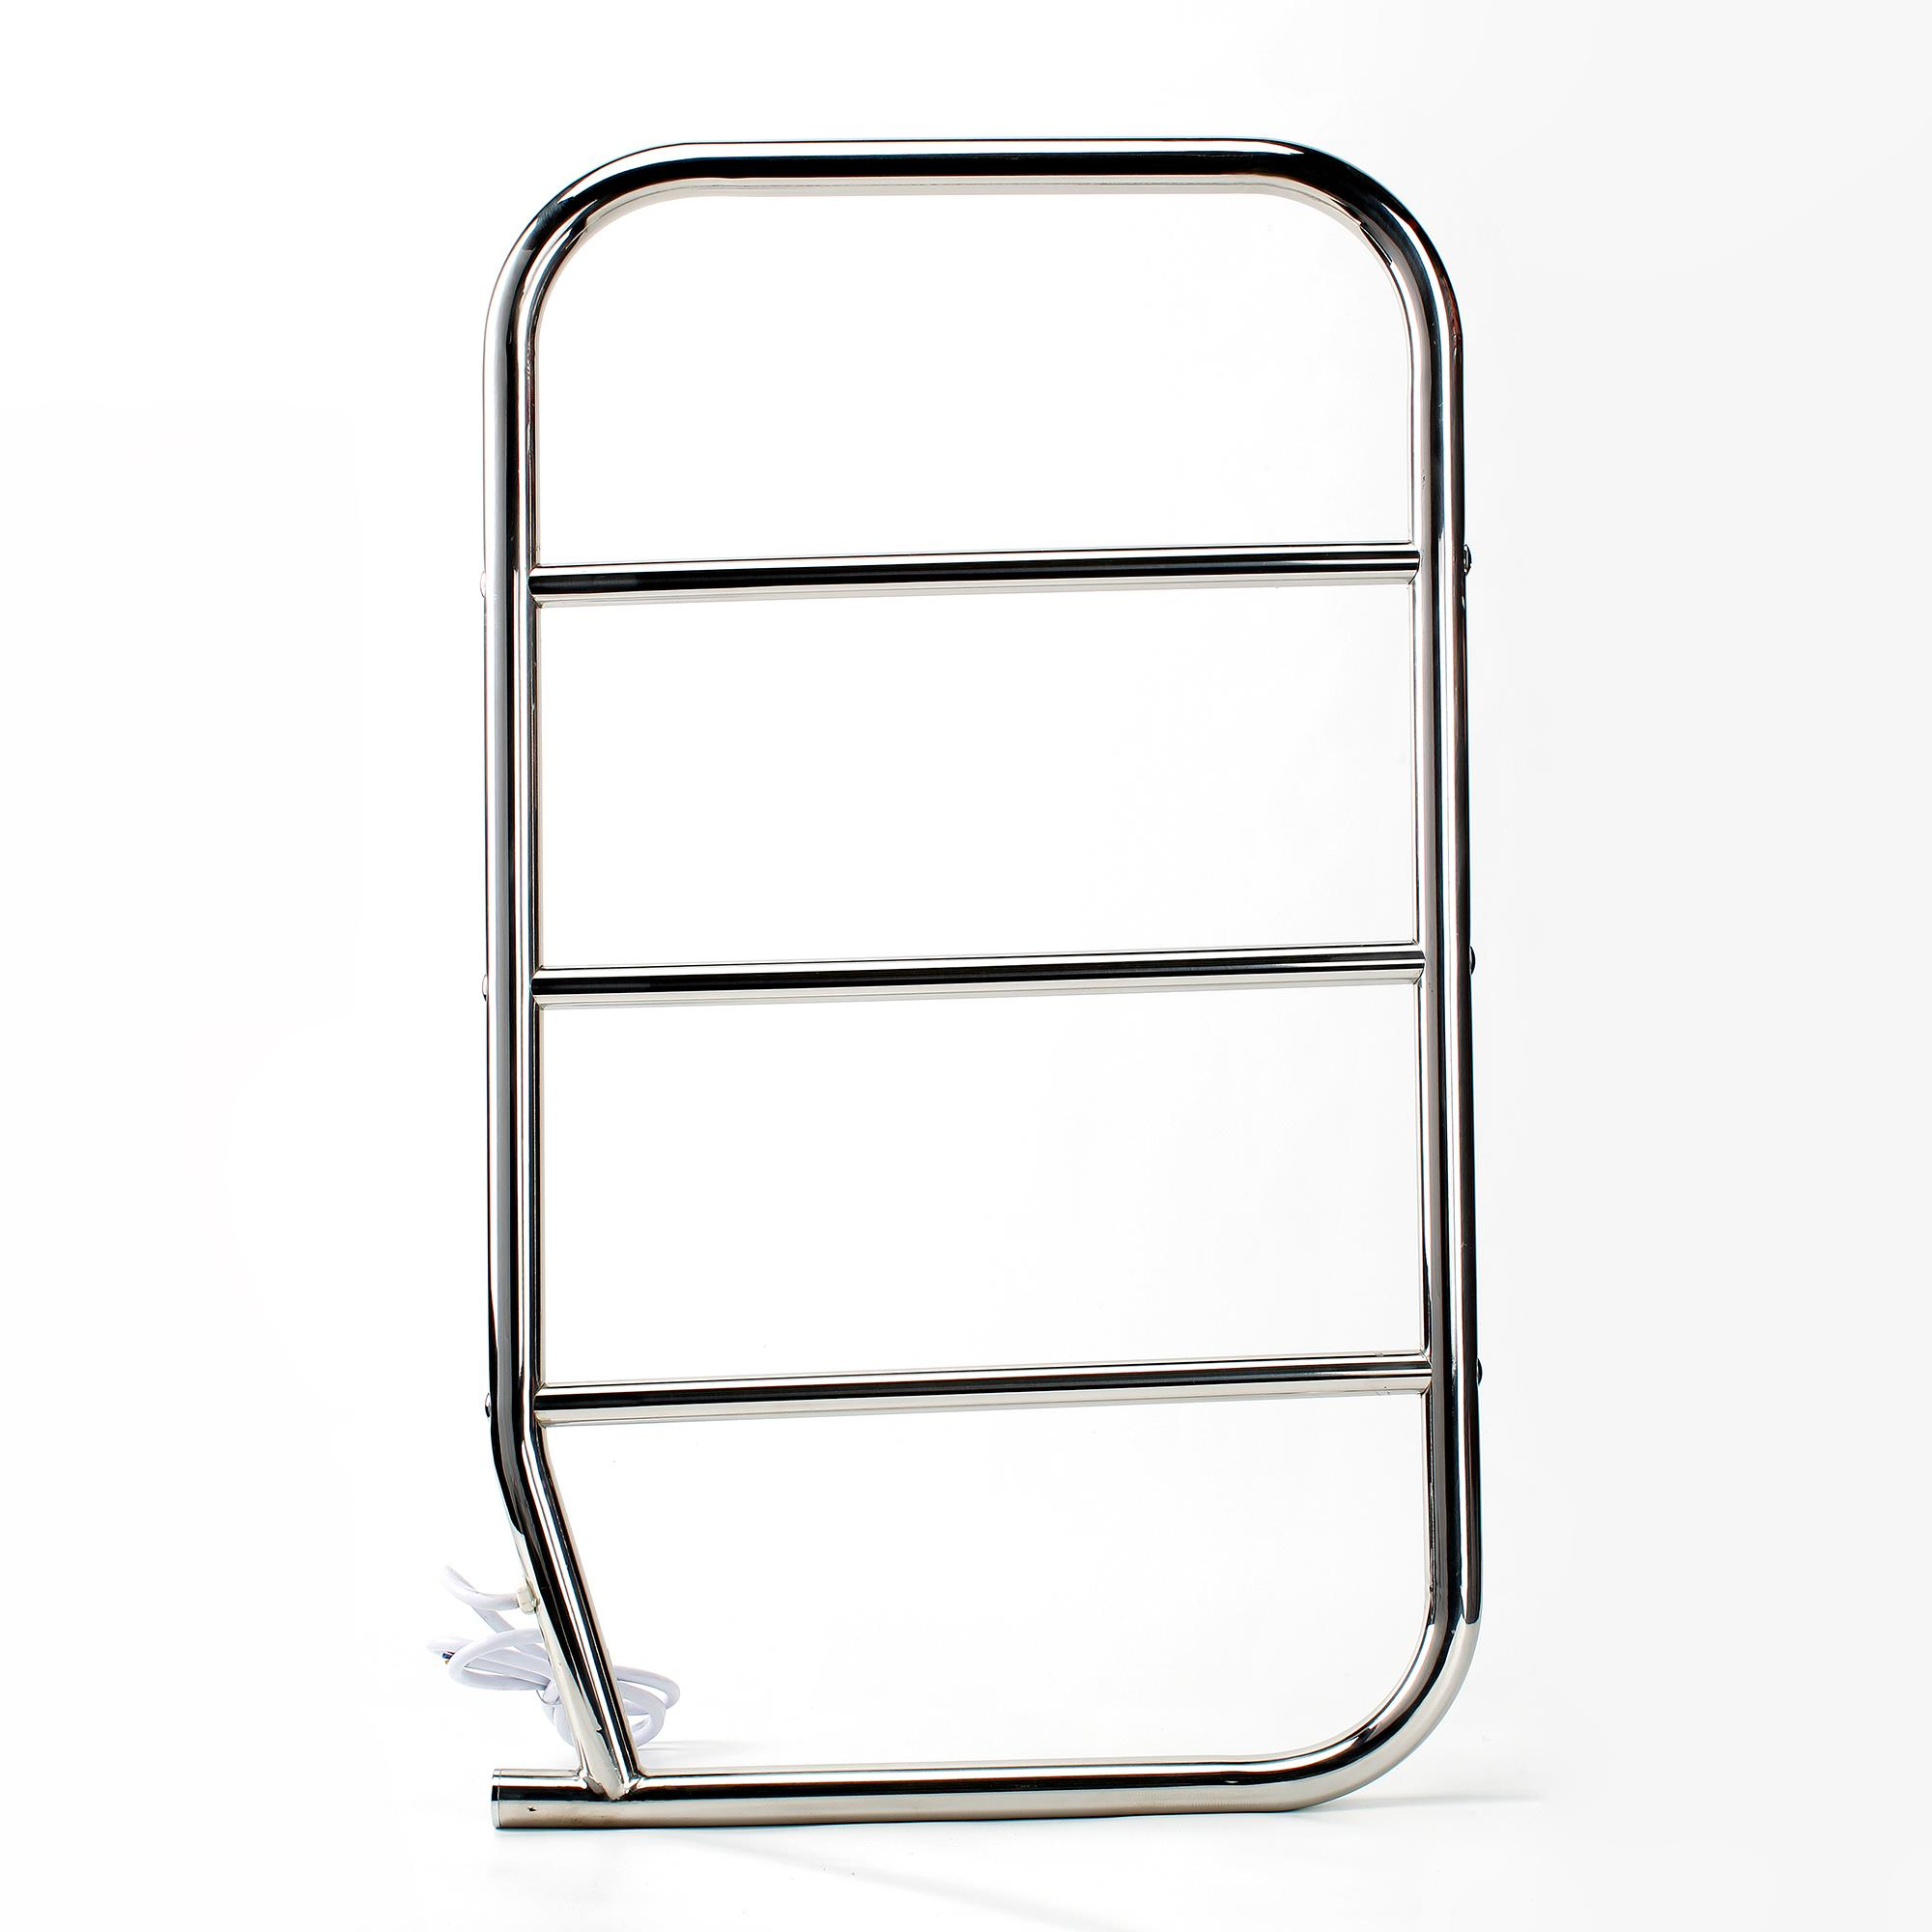 Dublin Dry Electric Heated Towel Rail 400mm X 700mm